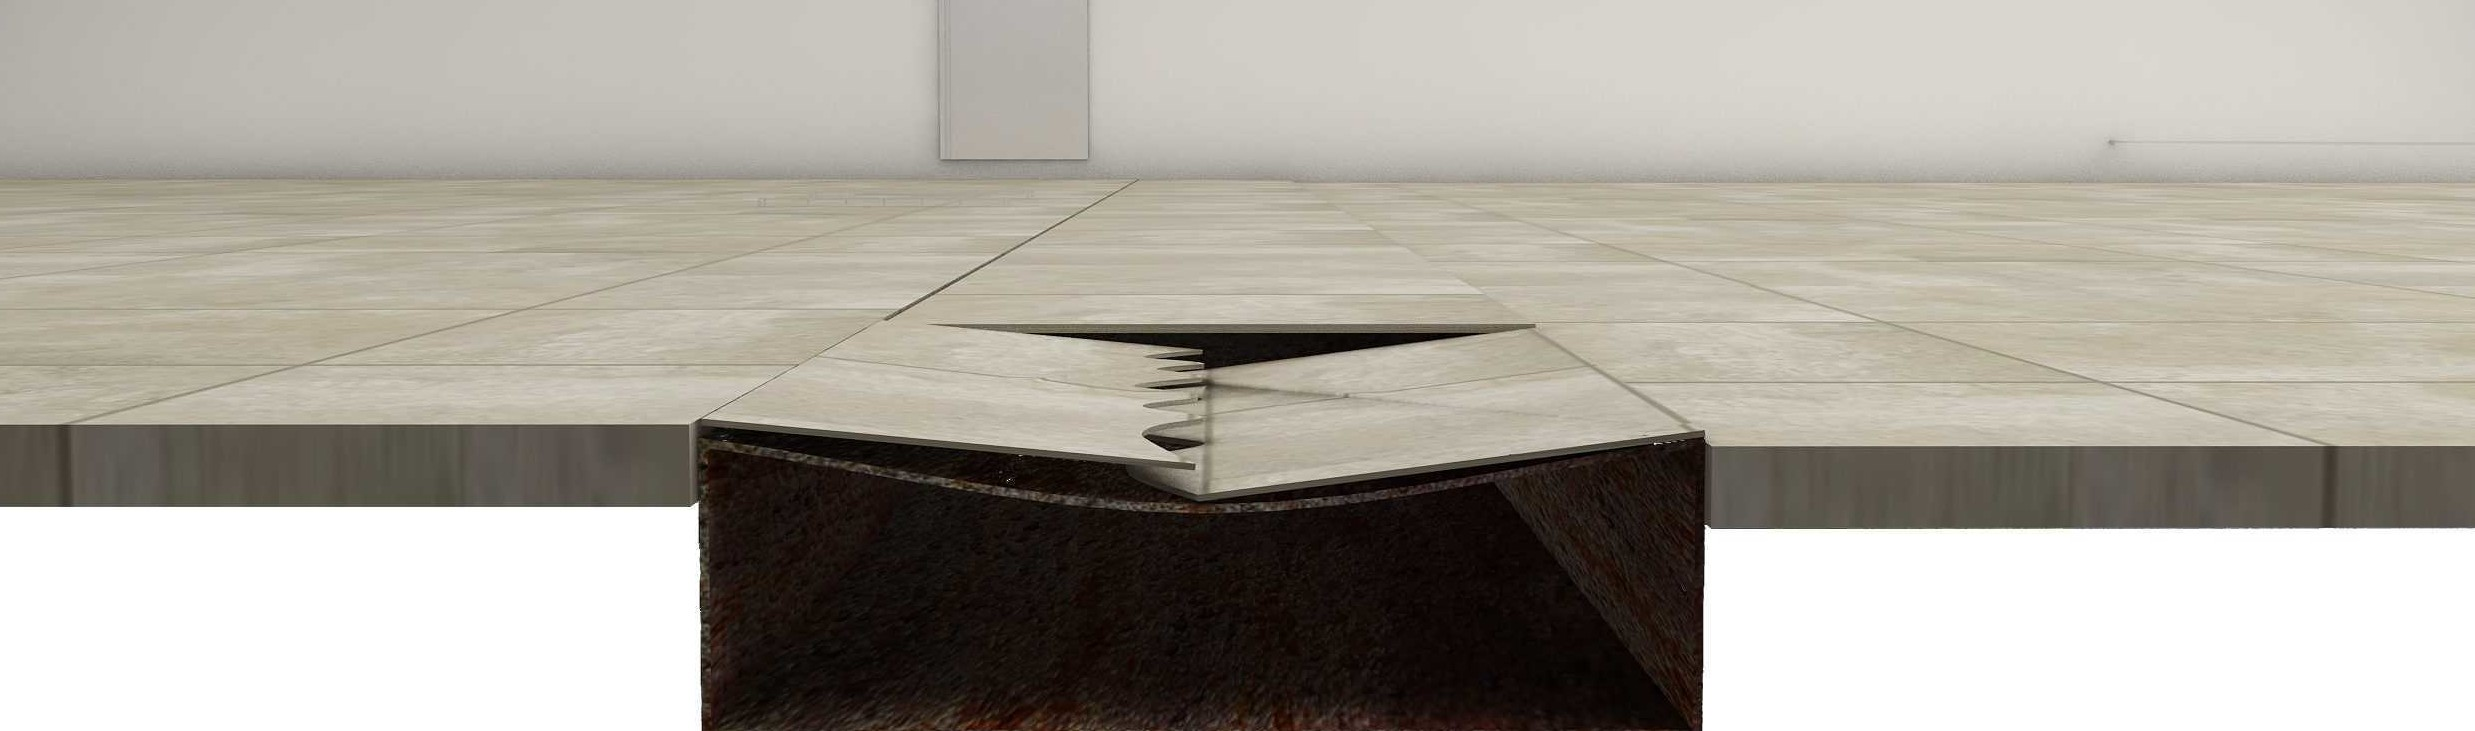 Floor tiles can break due to sagging of cable raceway lid due to loads